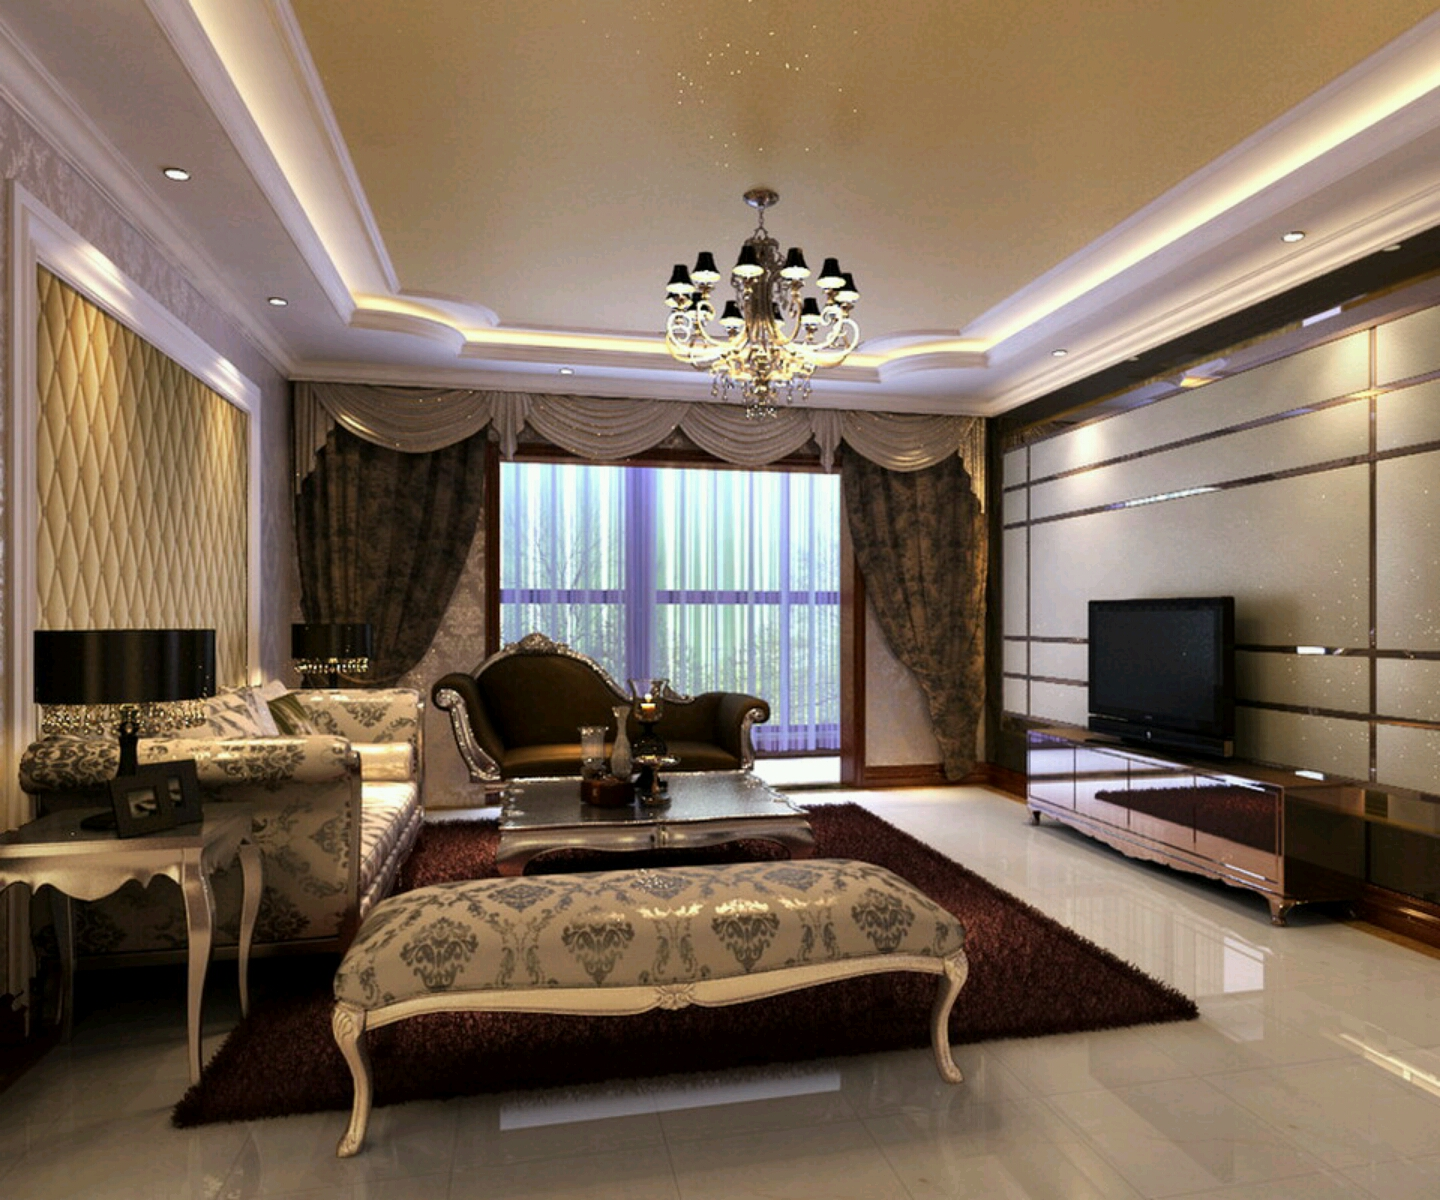 New home designs latest luxury homes interior decoration - Interior living room design ideas ...